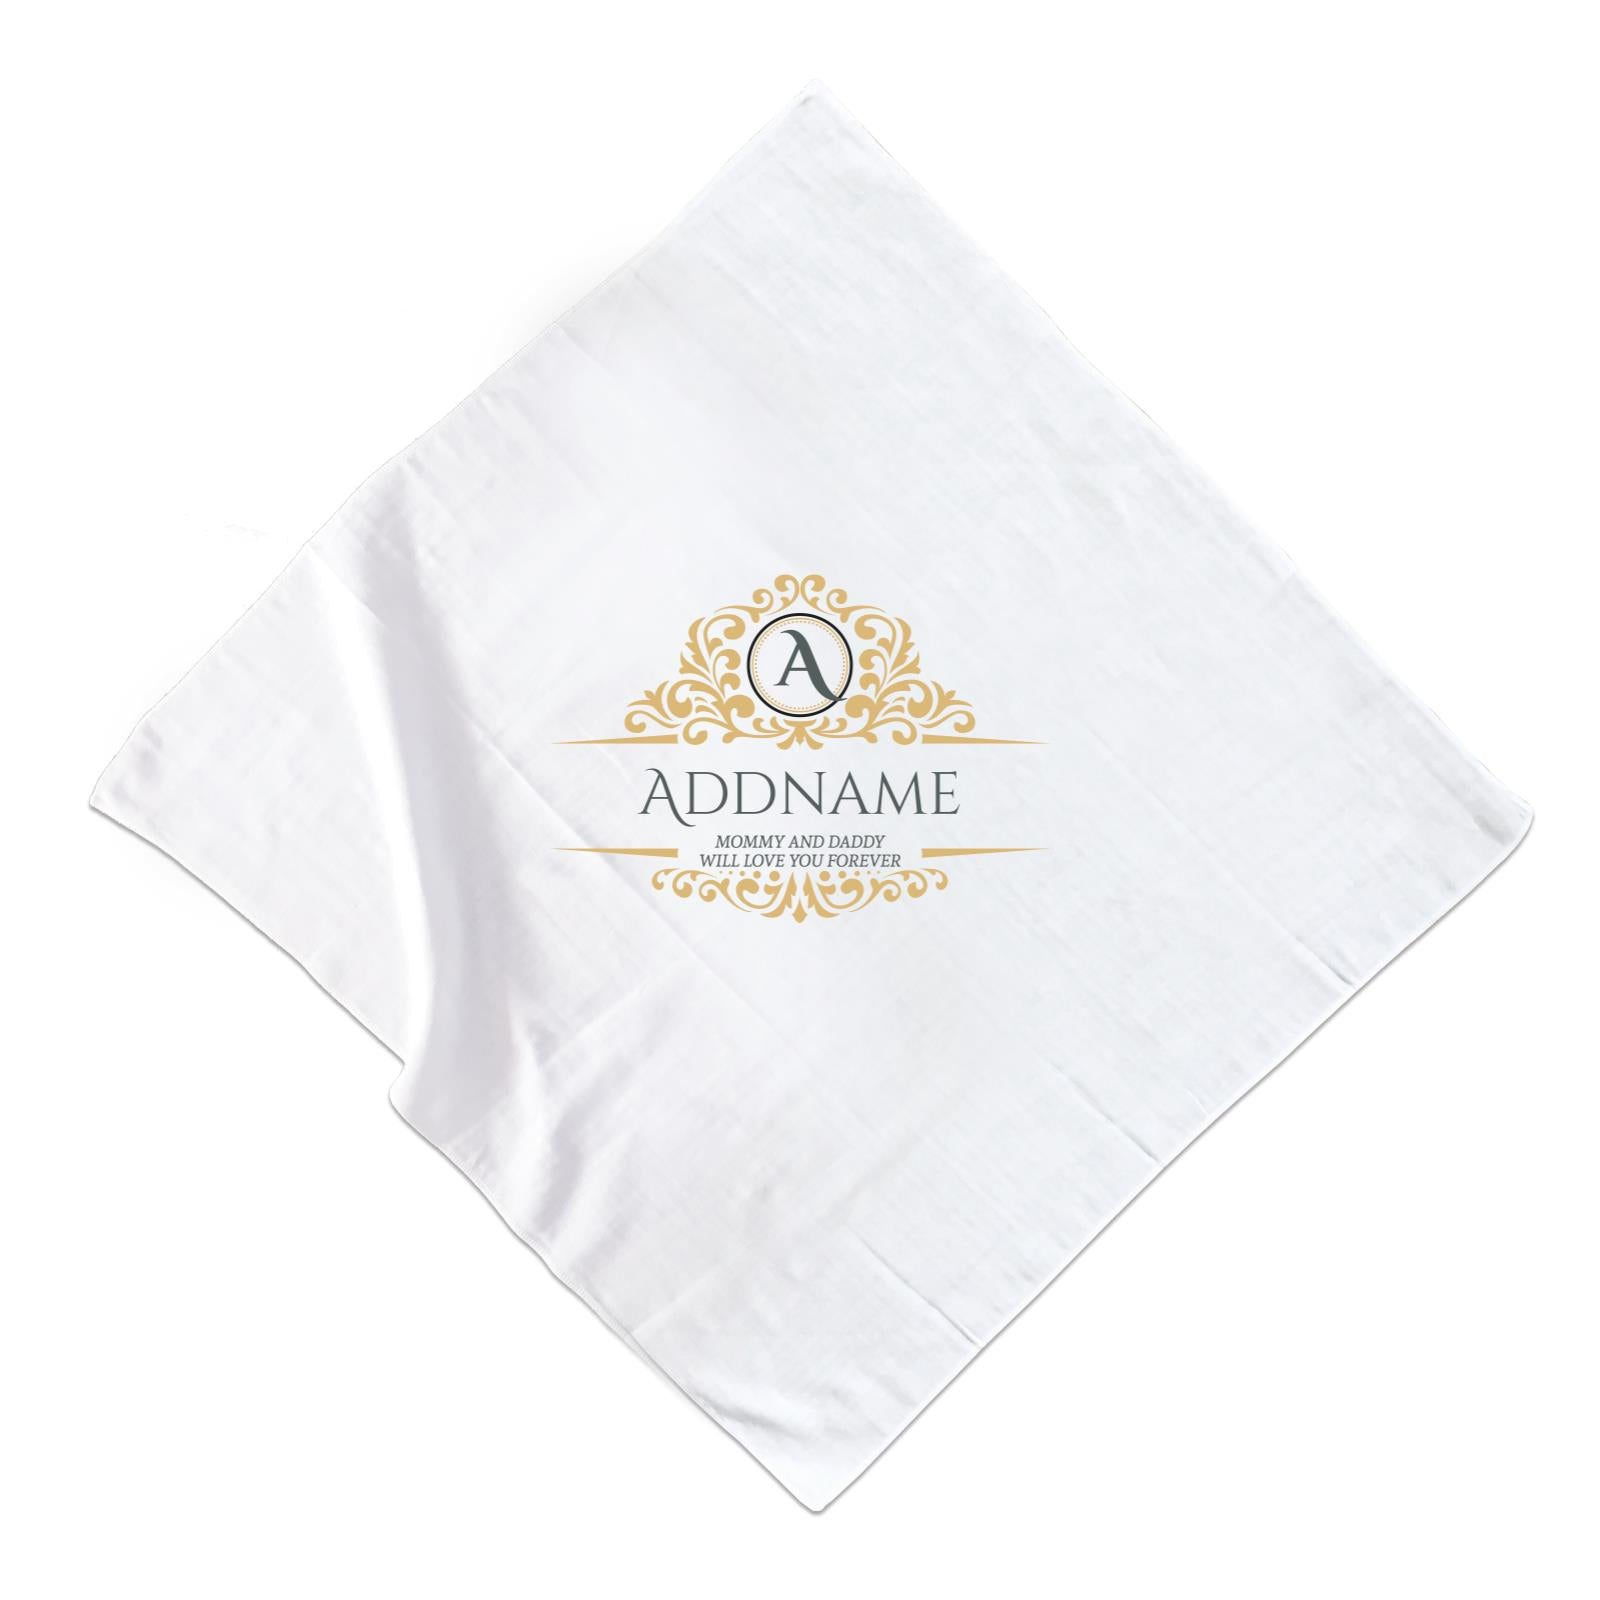 Royal Emblem Personalizable with Initial Name and Text Muslin Square